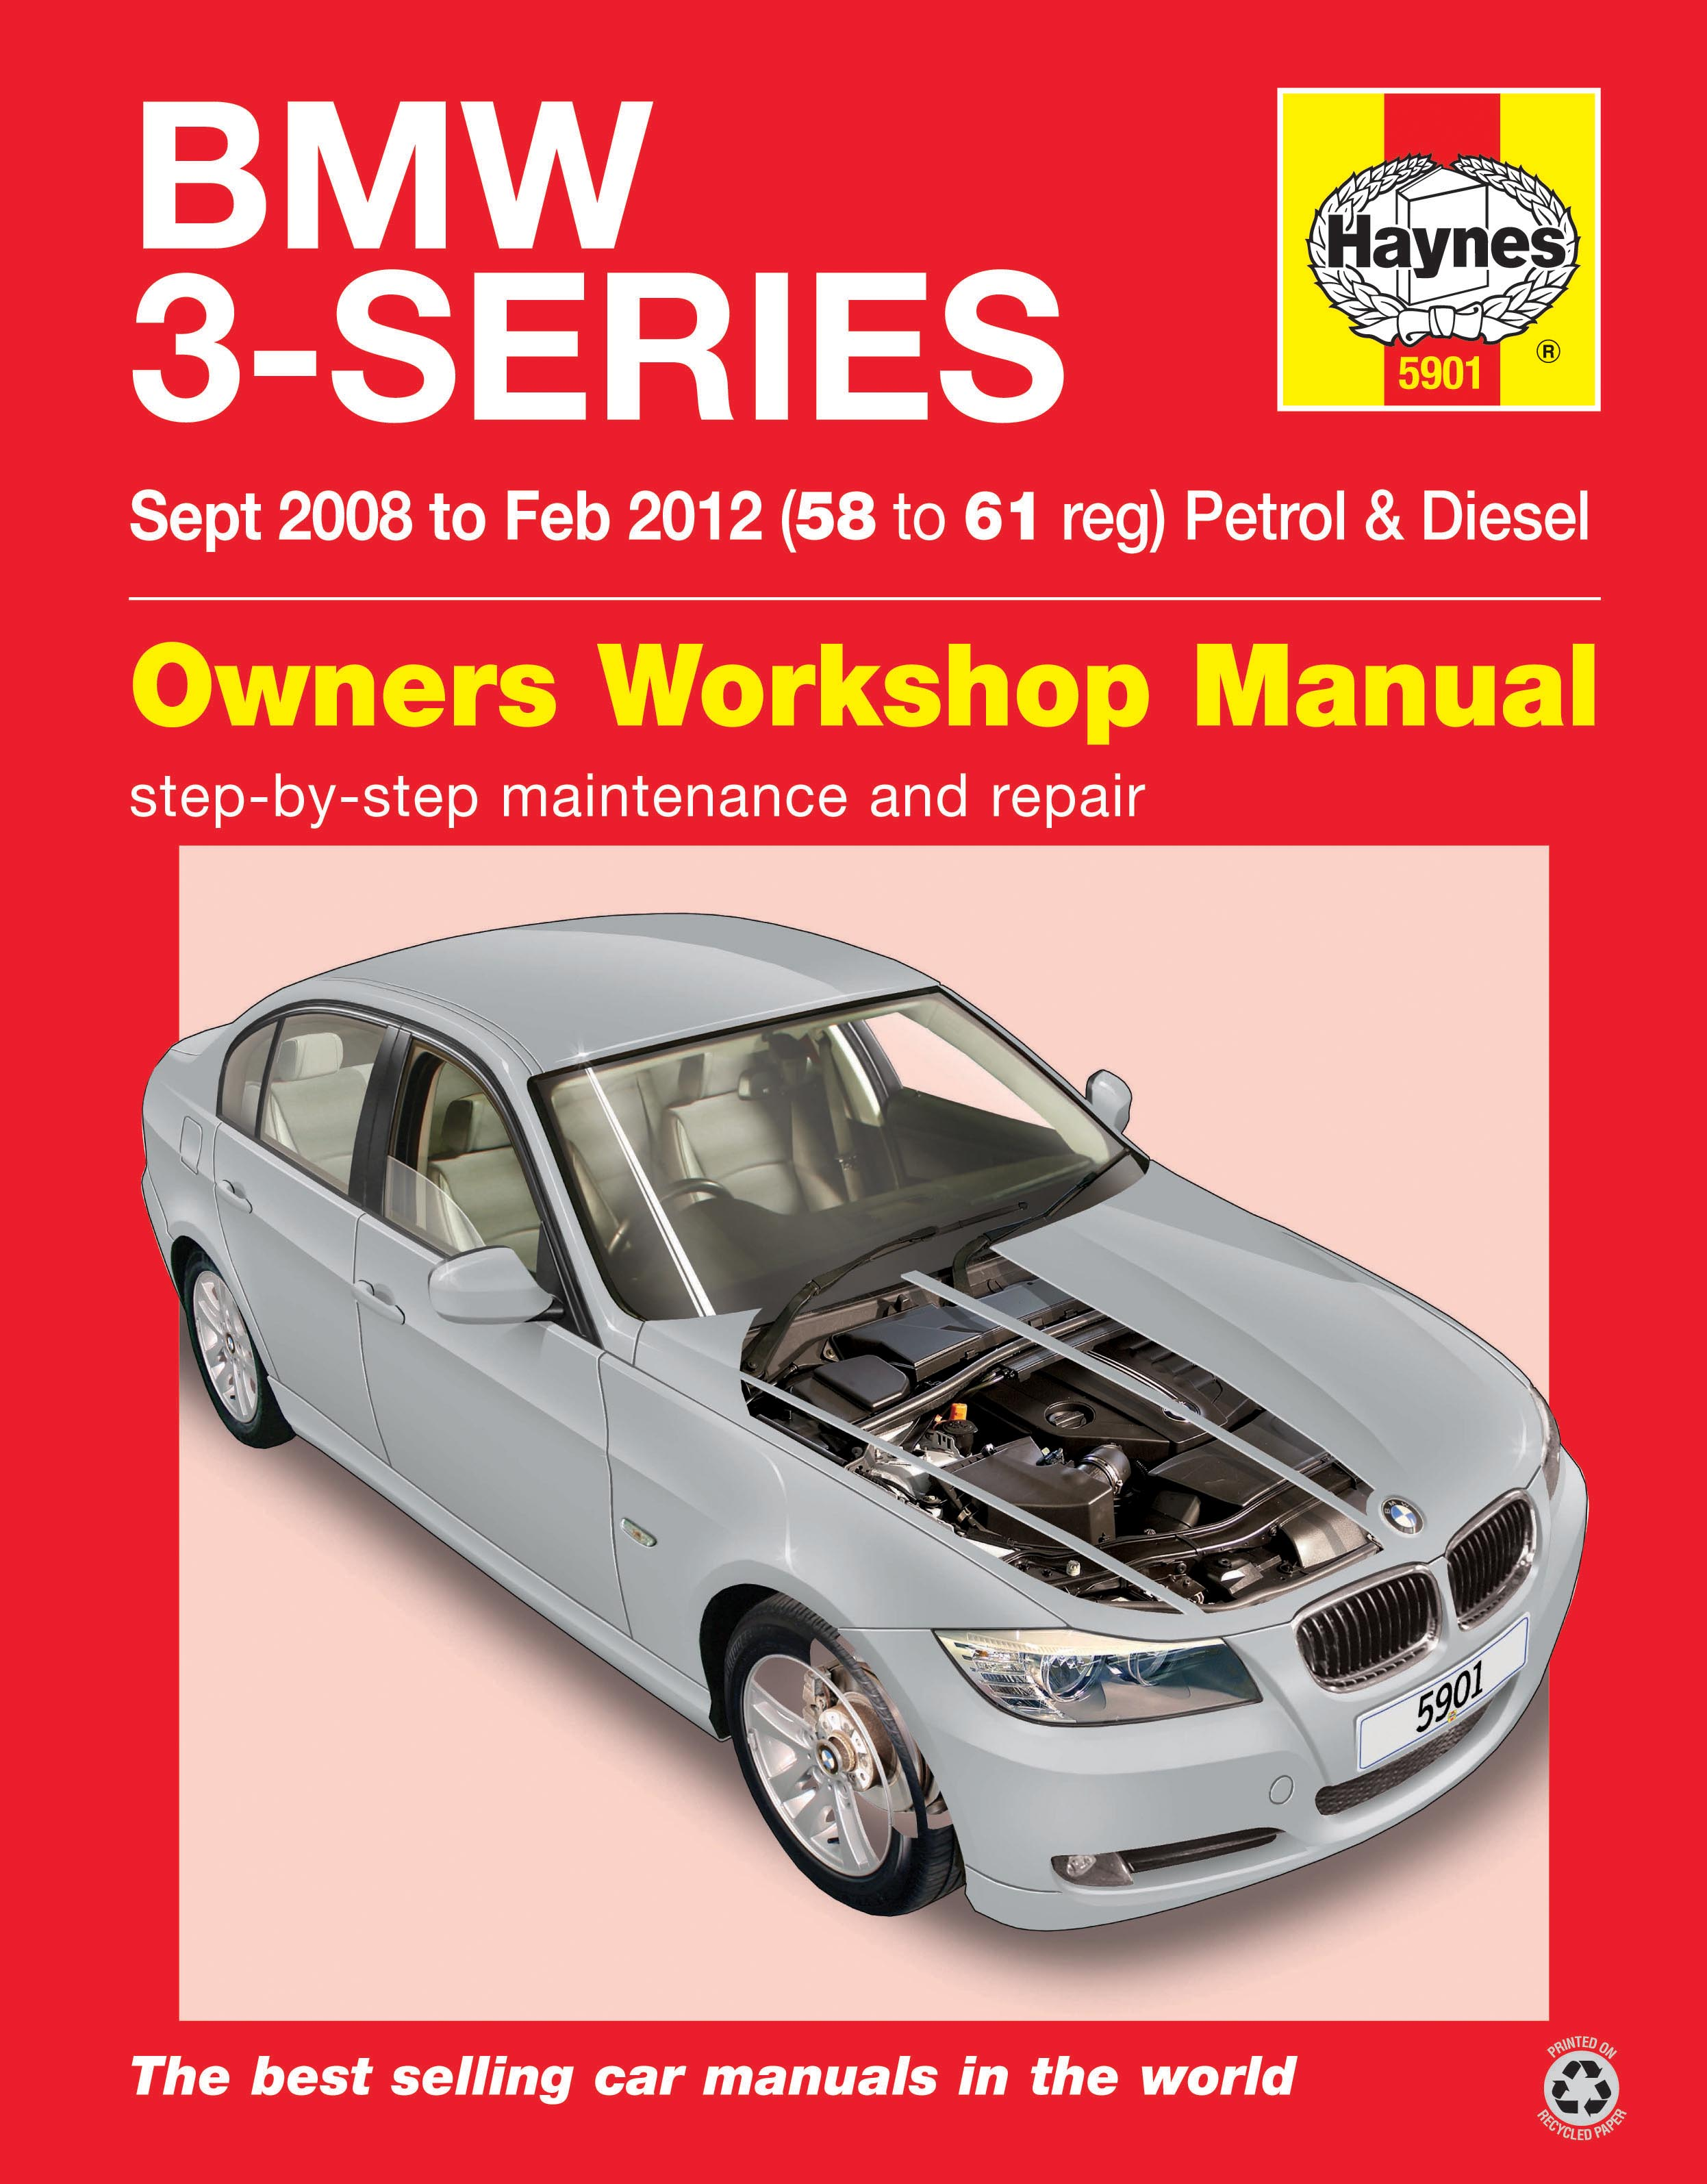 haynes 5901 owners workshop bmw 3 series 08 12 58 61. Black Bedroom Furniture Sets. Home Design Ideas